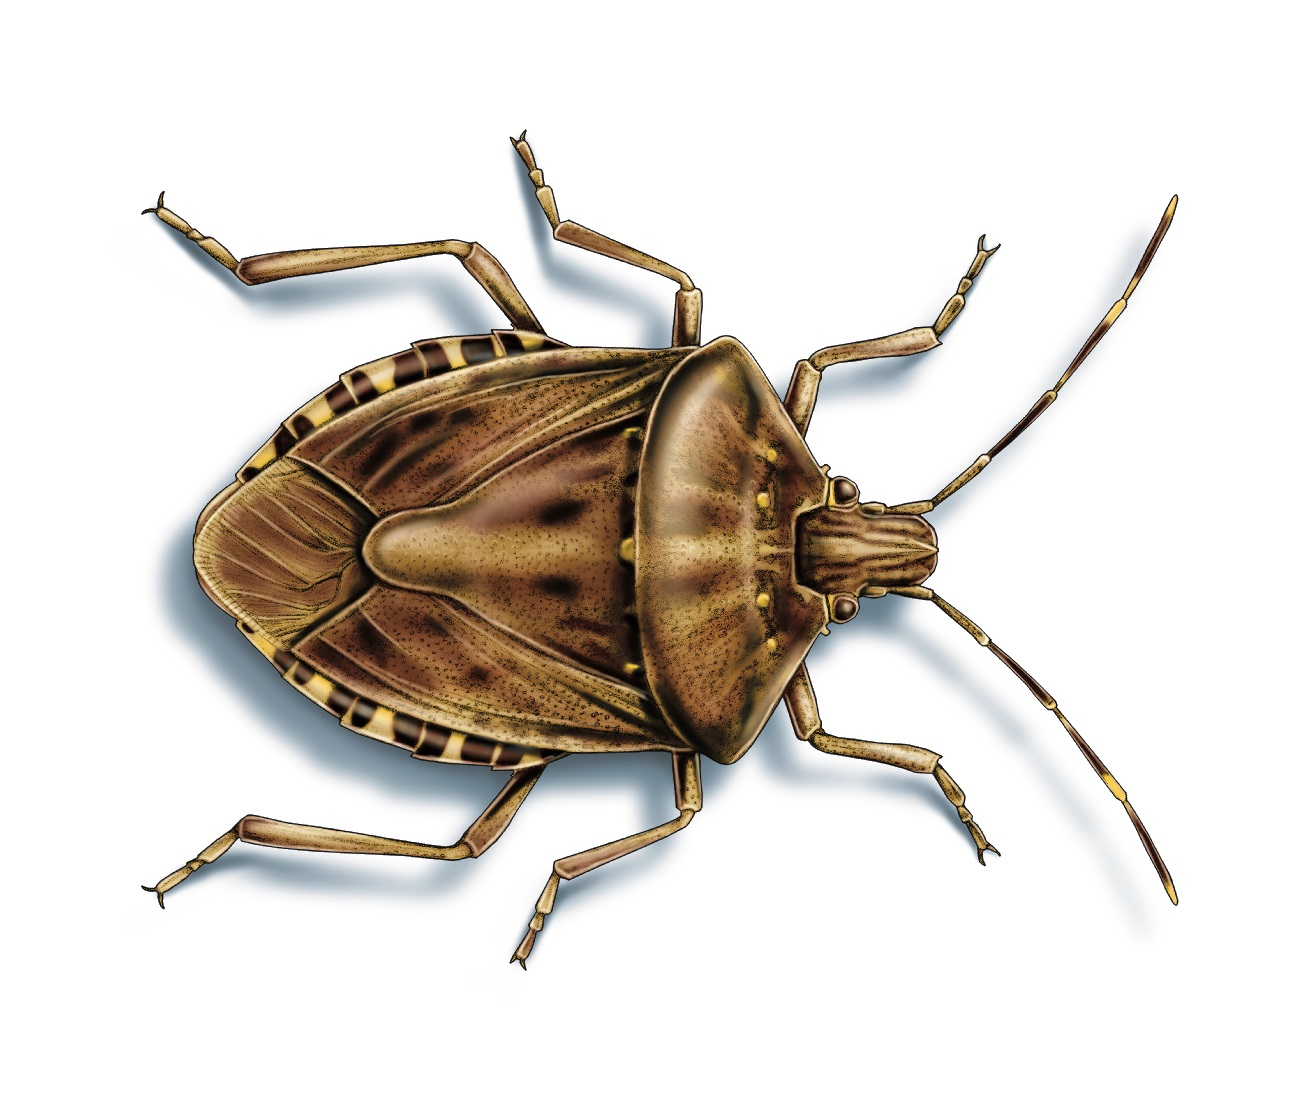 This illustrated image shows a marmorated stink bug